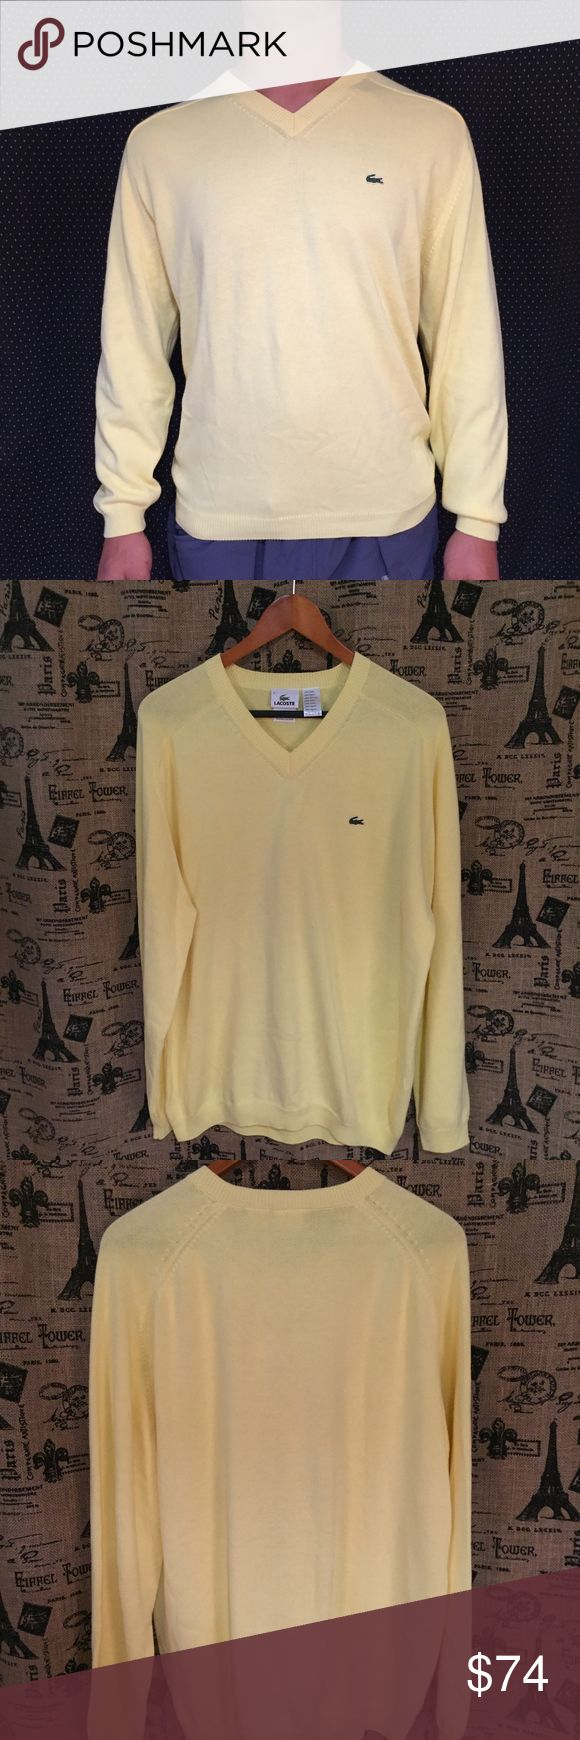 NWT Lacoste Men's V Neck Sweater Size L 6 Brand: Lacoste Size: L 6 Description: Long Sleeve v neck with Lacoste embroidered logo Condition: NWT If more measurements are needed, please don't hesitate to ask! Bundle Discount Available! Reasonable offers welcome! No trades please.. Thanks for stopping by!! #Poshmark #Poshmarkapp #Poshmarkcloset Item #1977 Lacoste Sweaters V-Neck